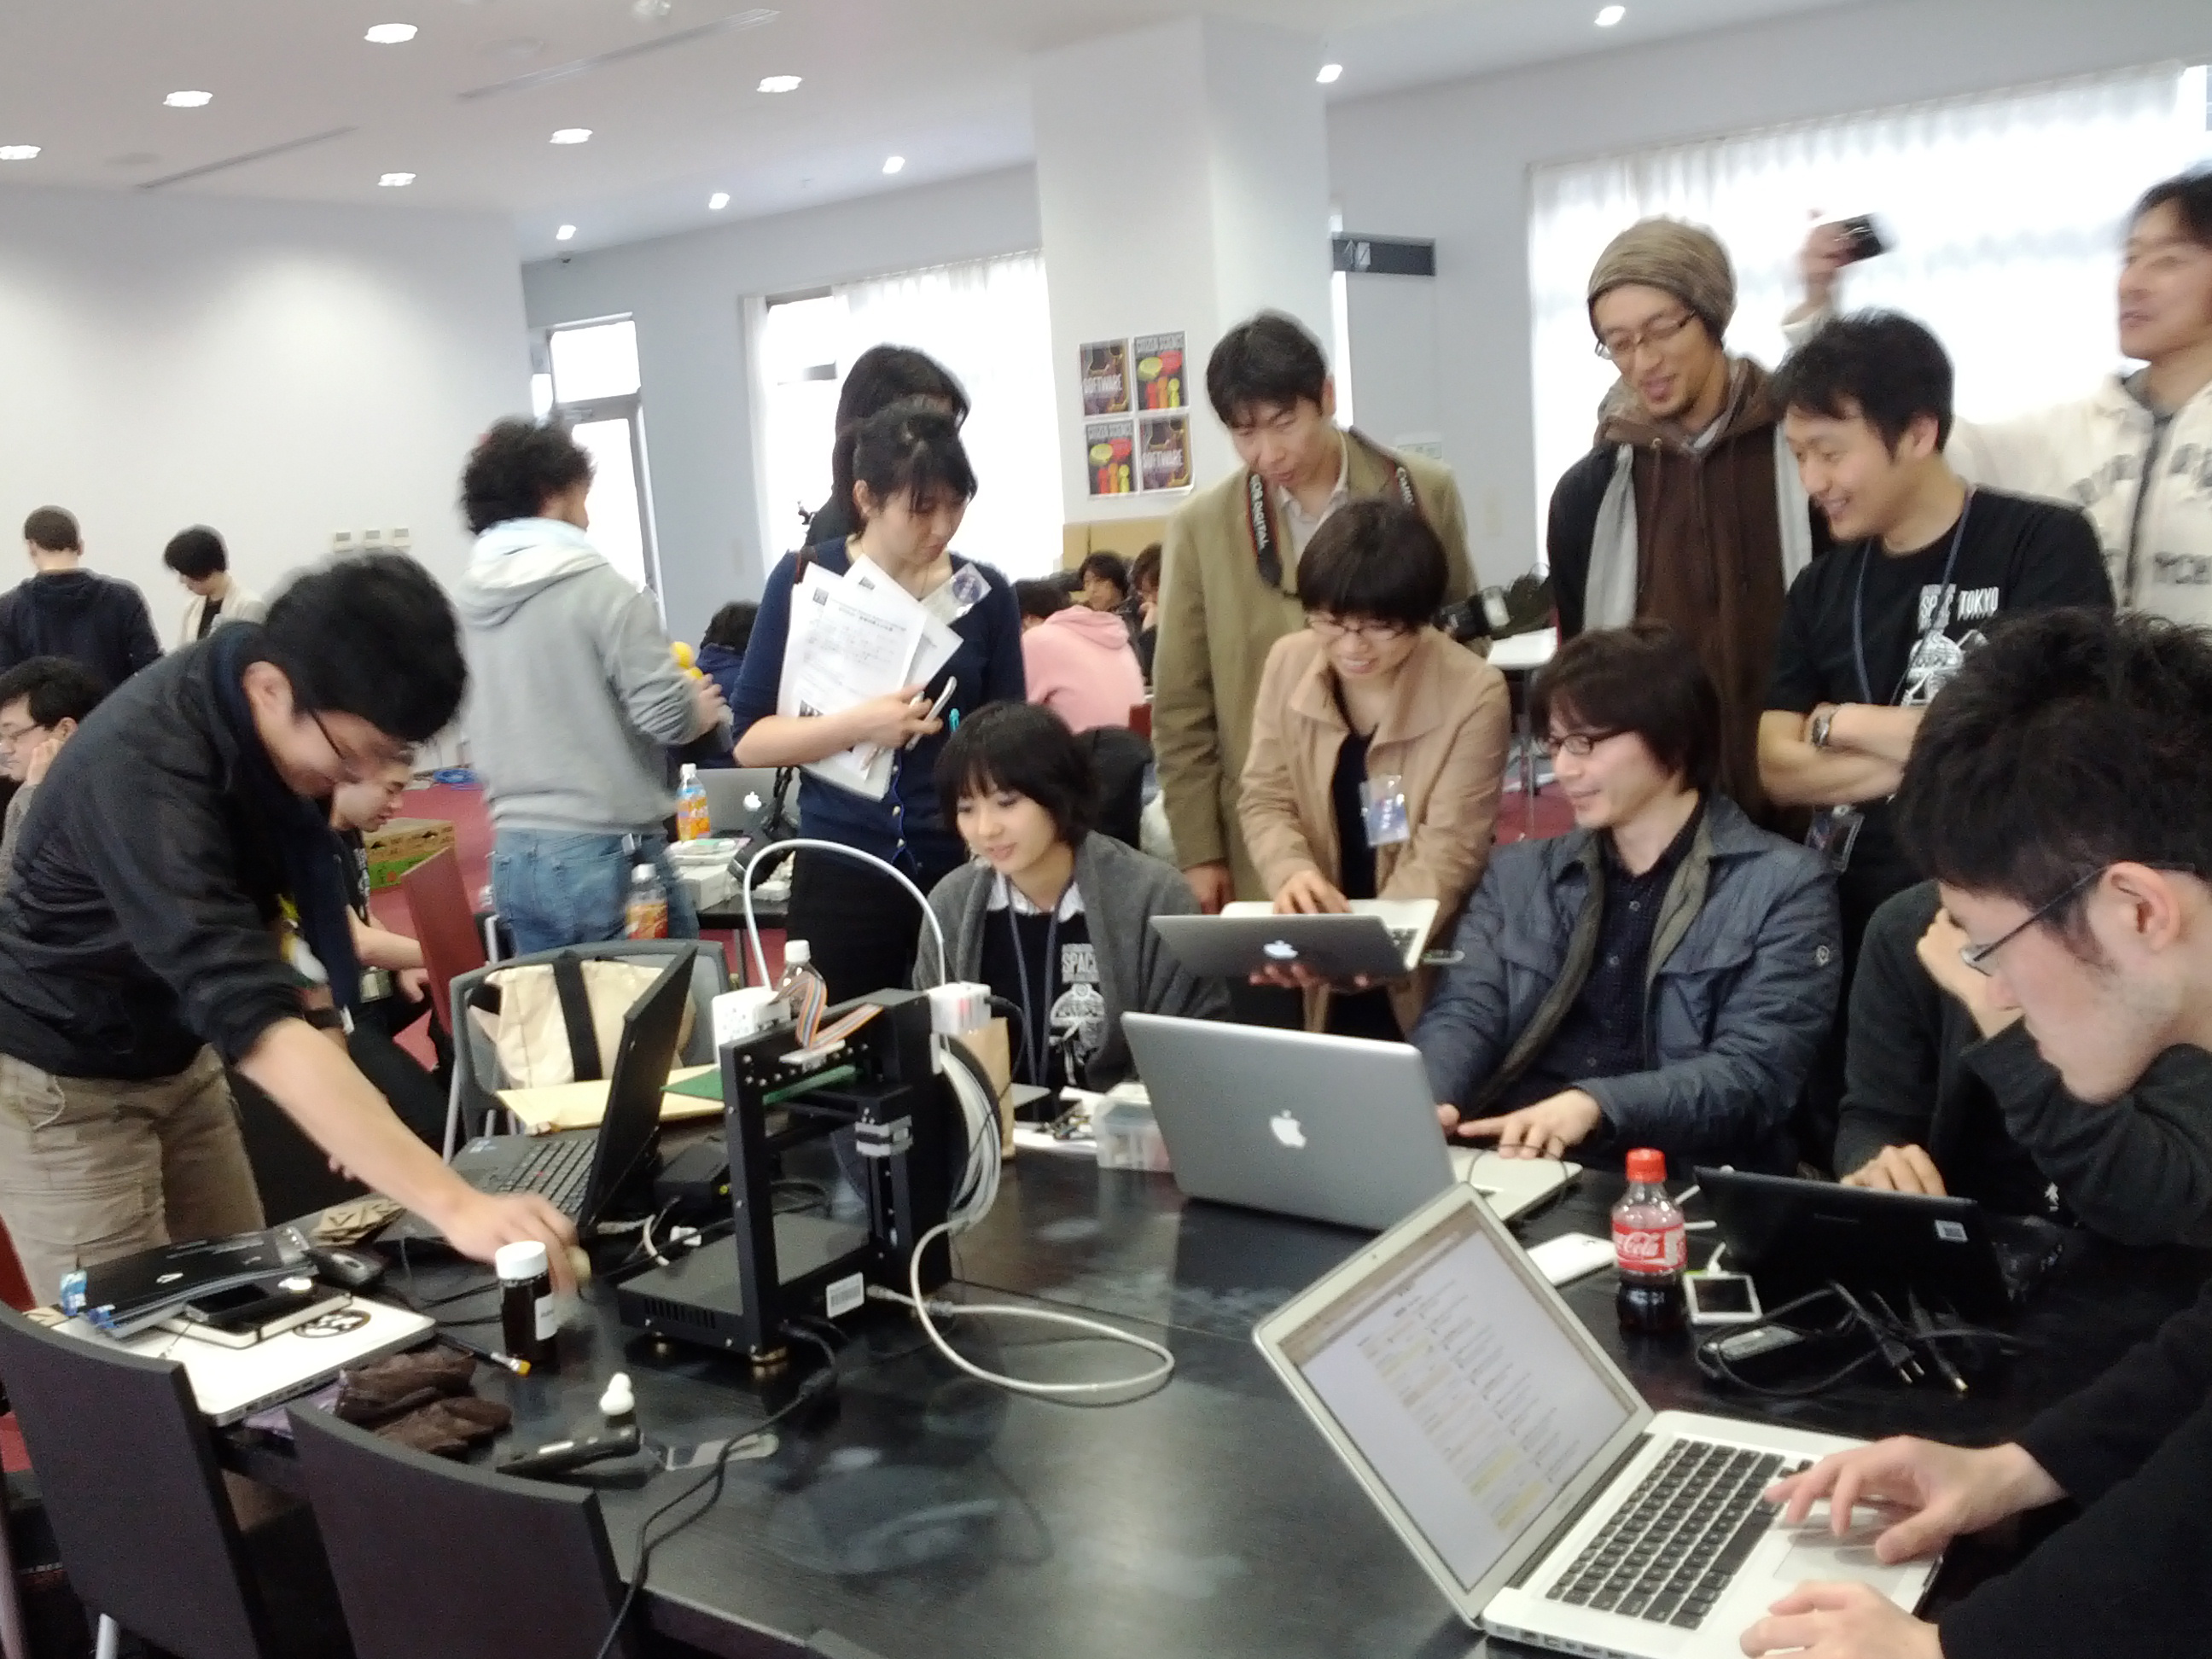 People all over the world—here, in Tokyo—participated in the 2012 International Space Apps Challenge. Photo Credit: Fumi Yamazaki